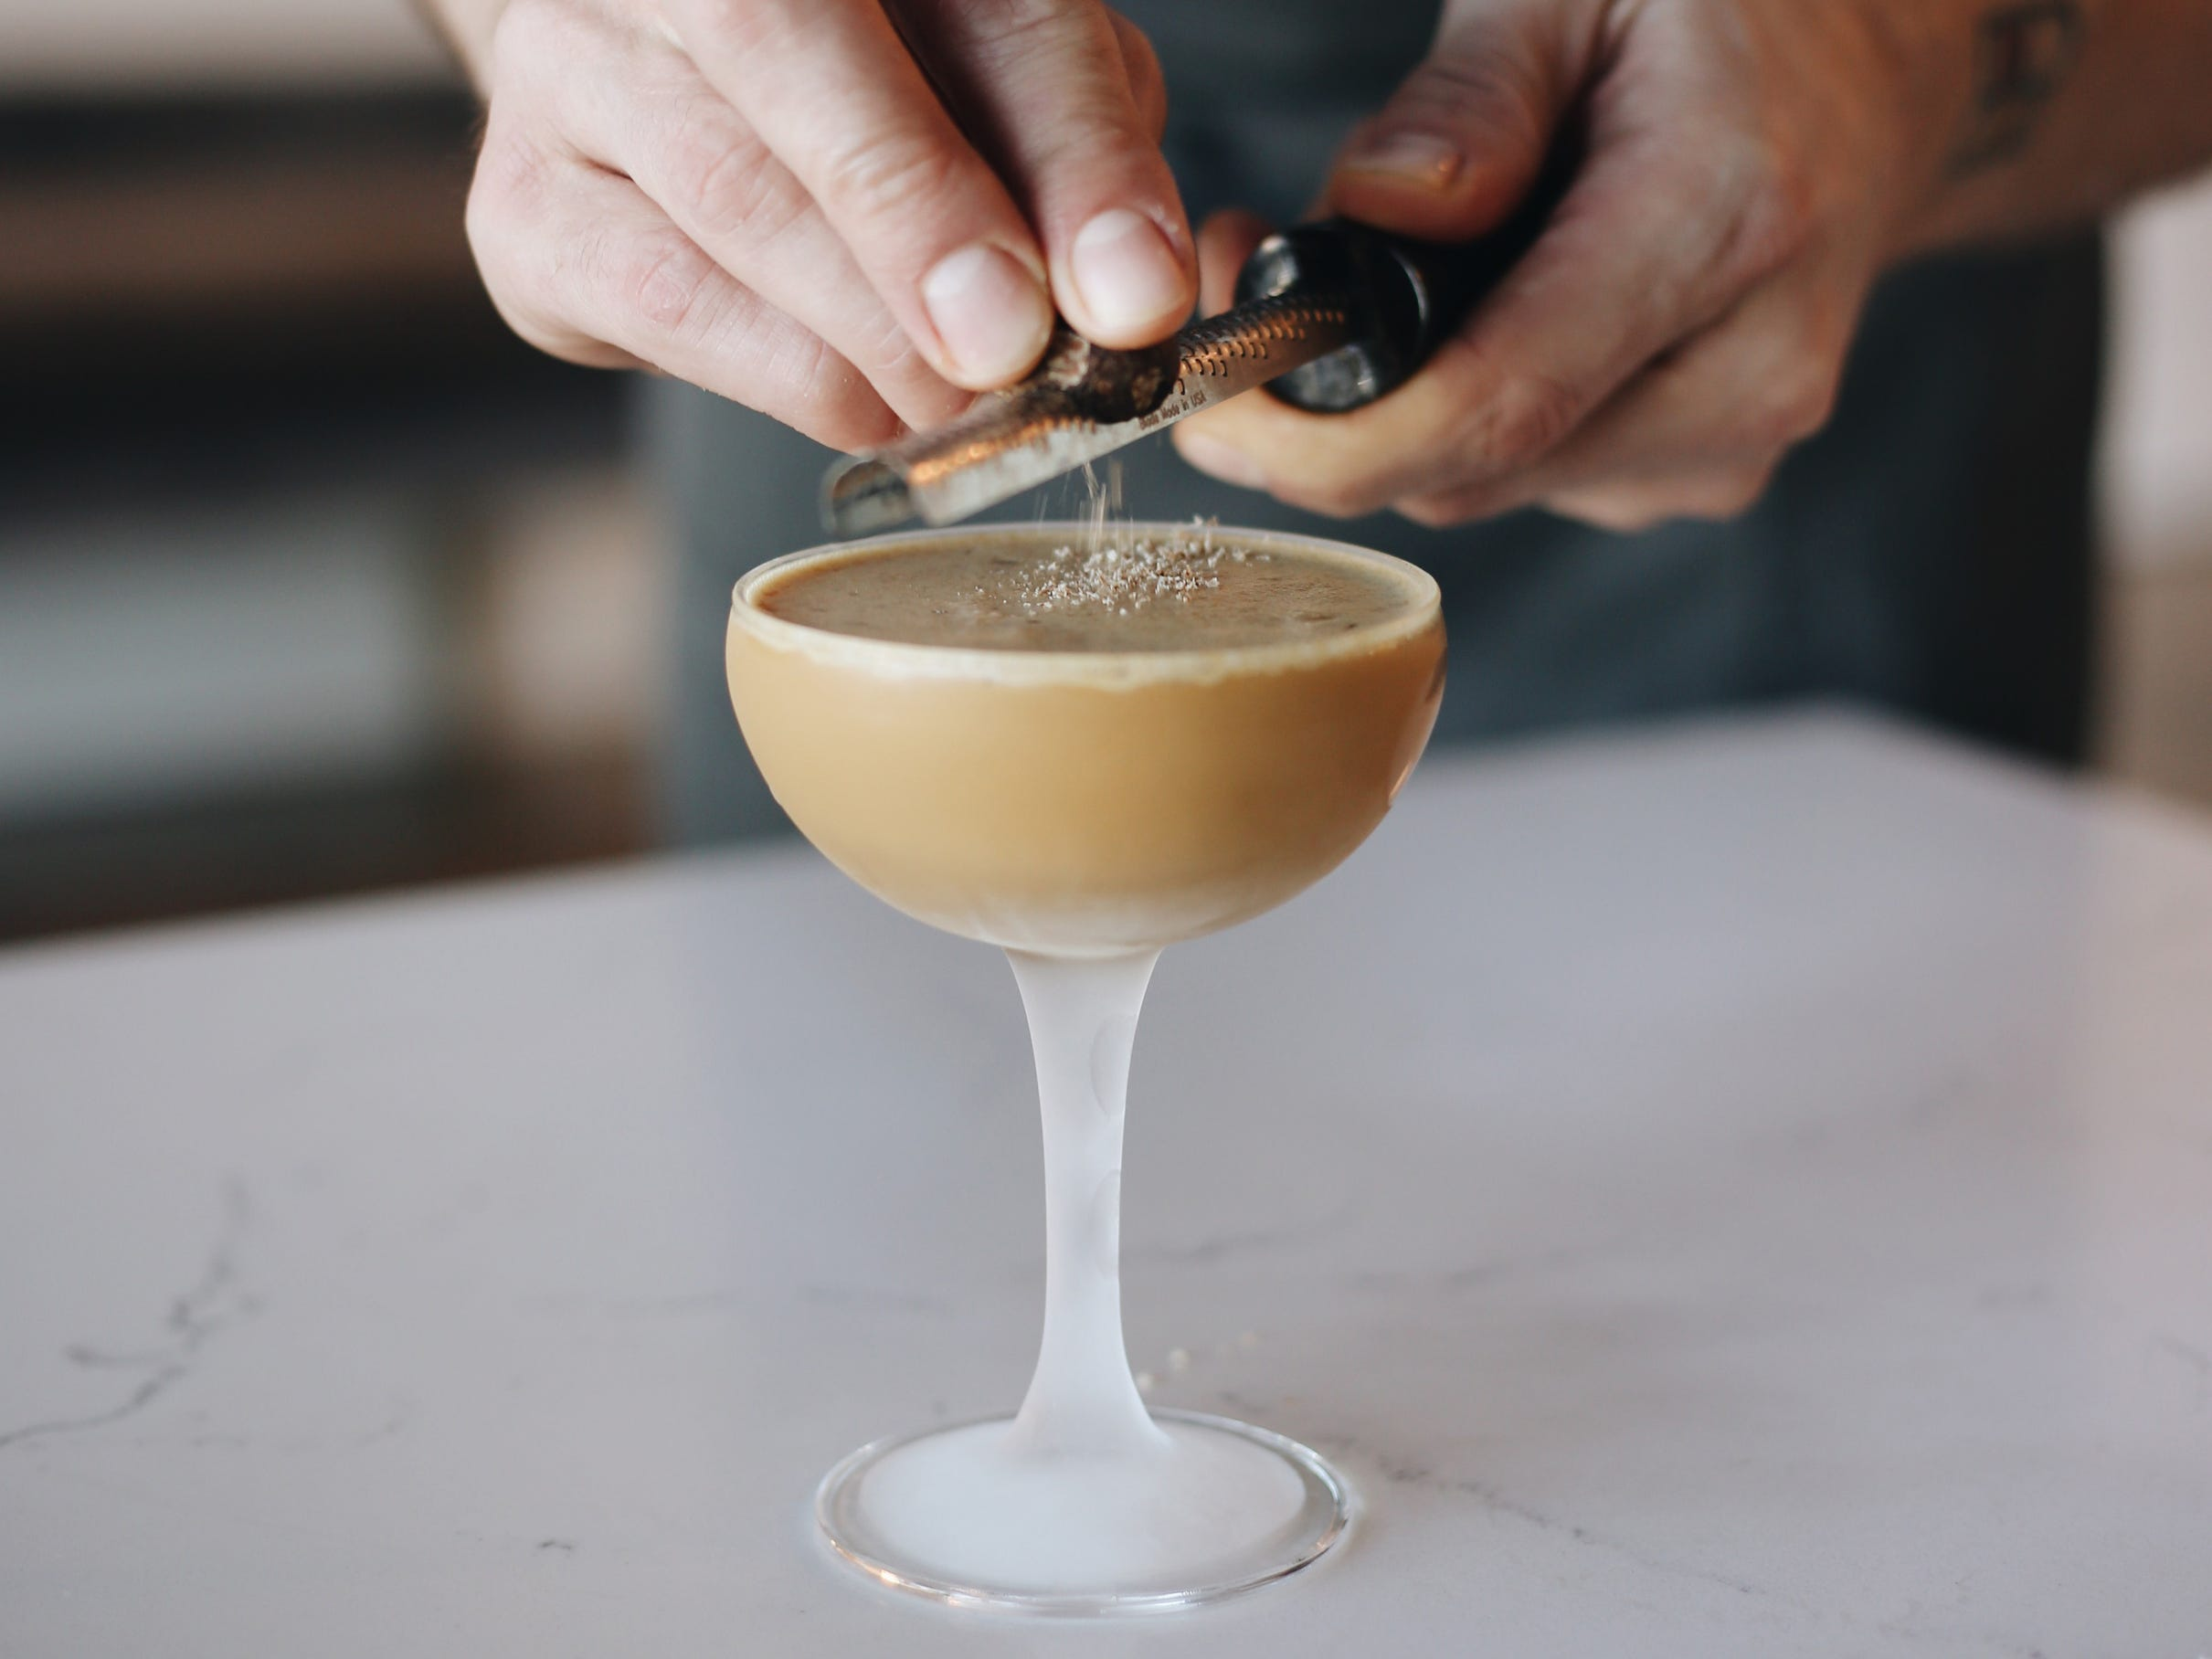 A Better Morning cocktail, with Early Times bonded bourbon, rested espresso, corn milk and warming spices at Stay Golden restaurant and roastery.